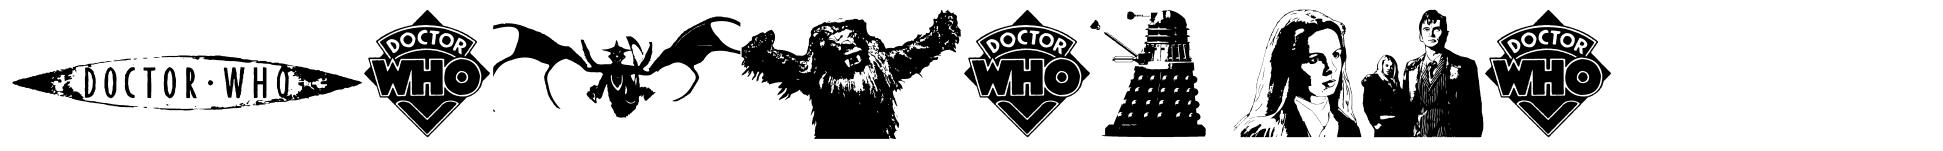 Doctor Who 2006 font